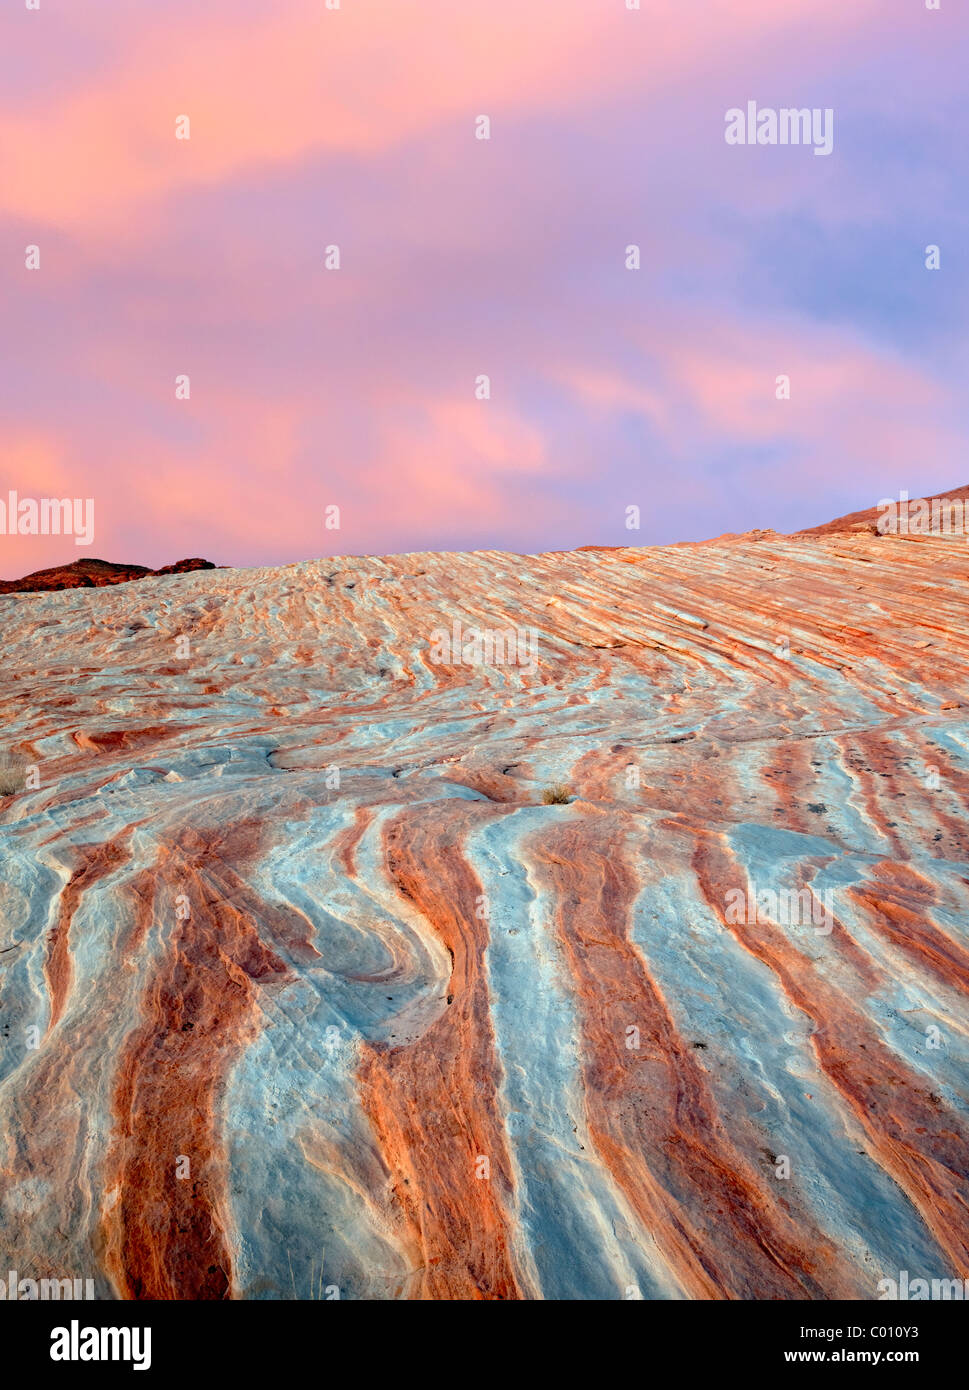 Bands of striated, colorful rocks. Valley of Fire State Park, Nevada - Stock Image